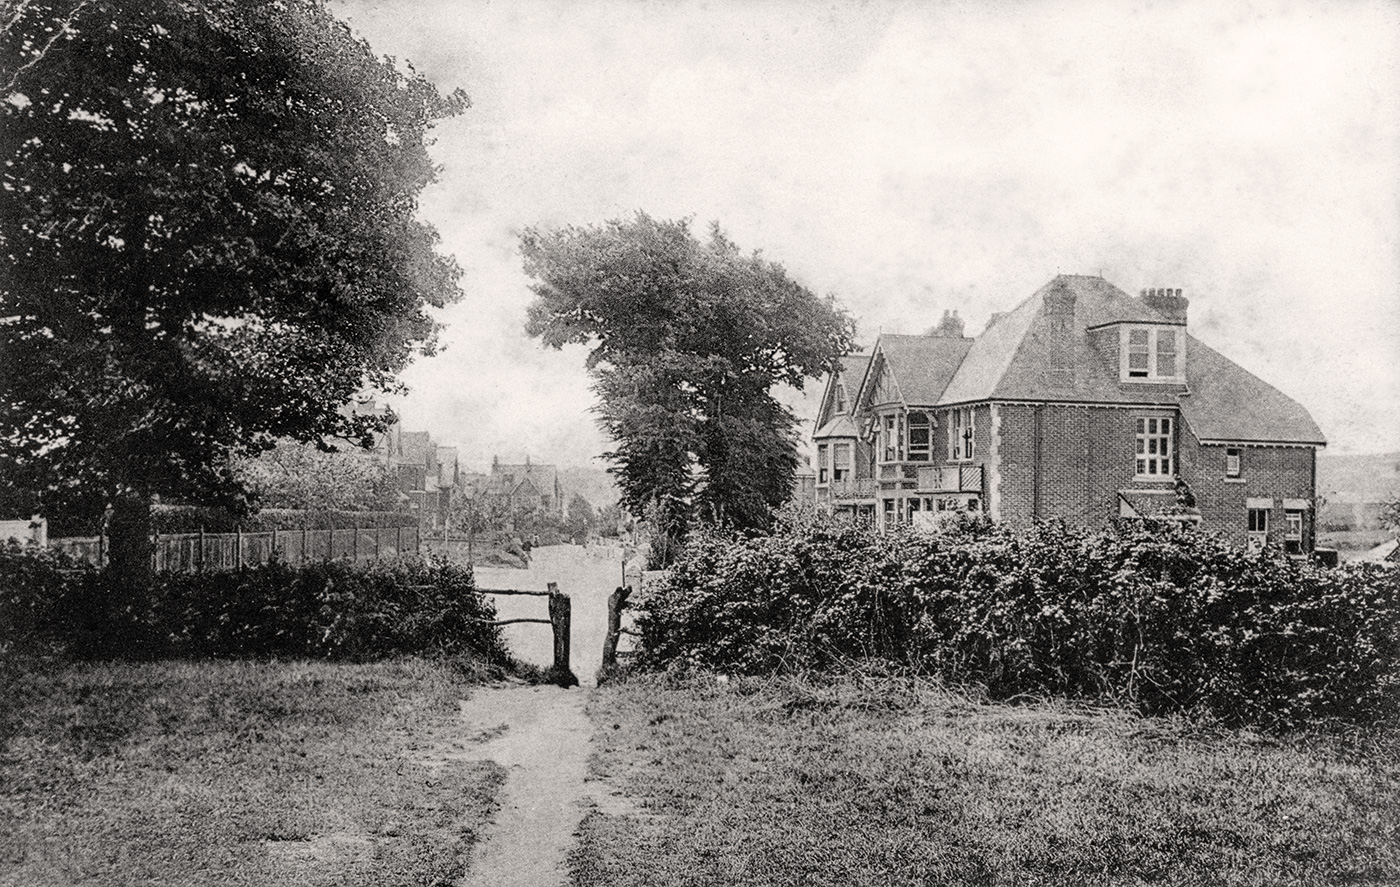 Ulwell Road in the early 1900s